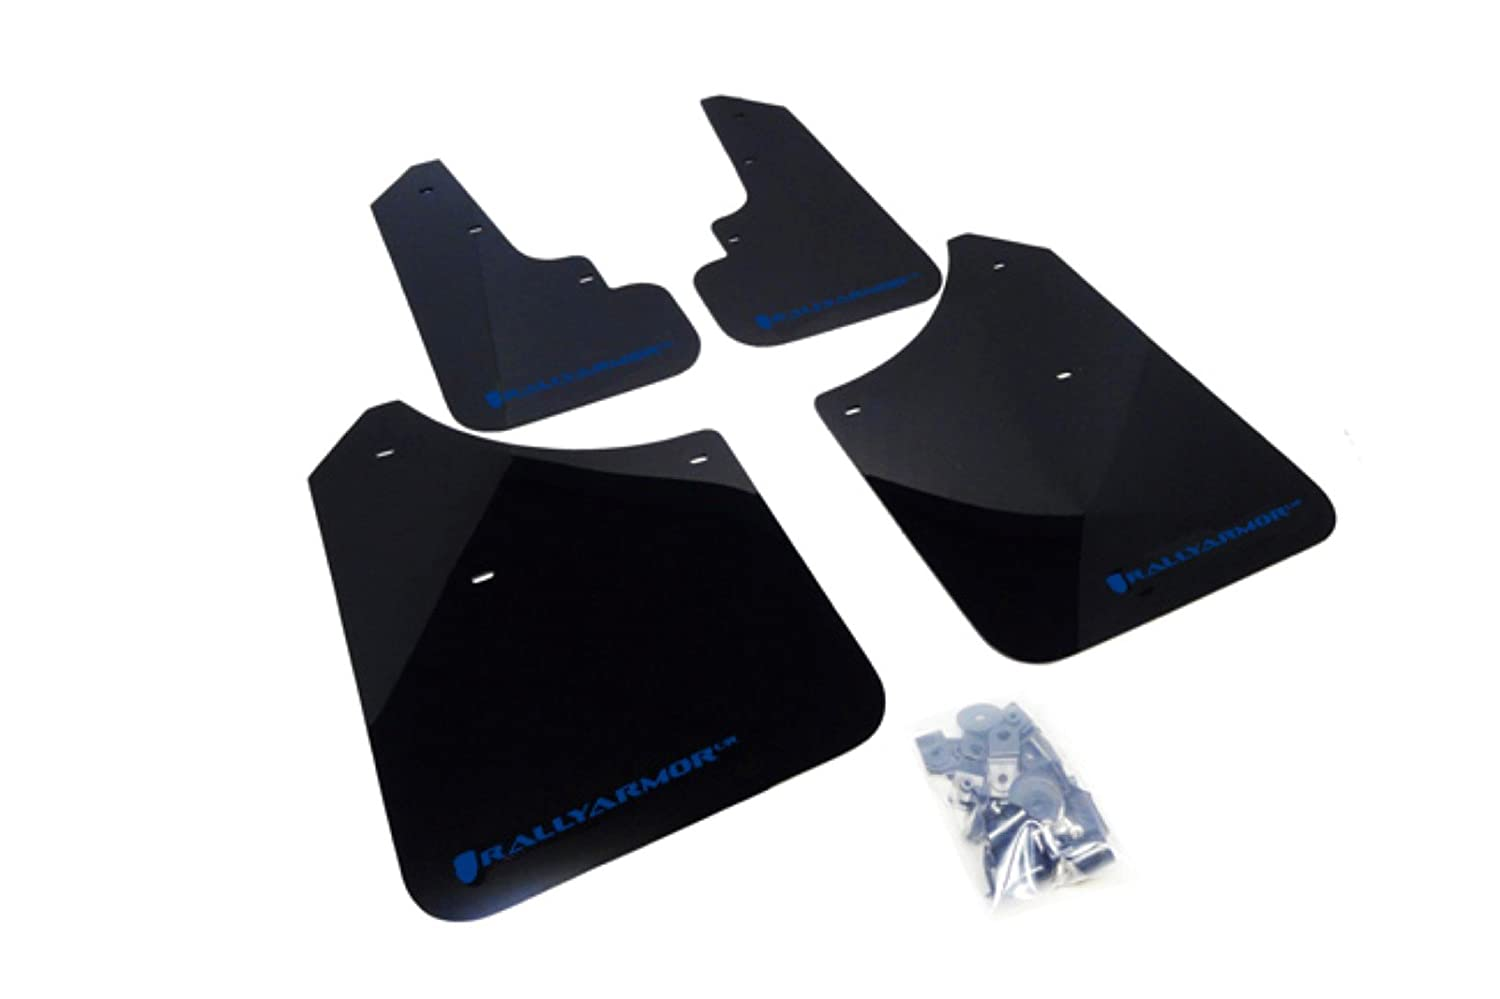 2003-2008 Subaru Forester UR Blue Mud Flap with Logo Rally Armor MF5-UR-BLK//BL Black